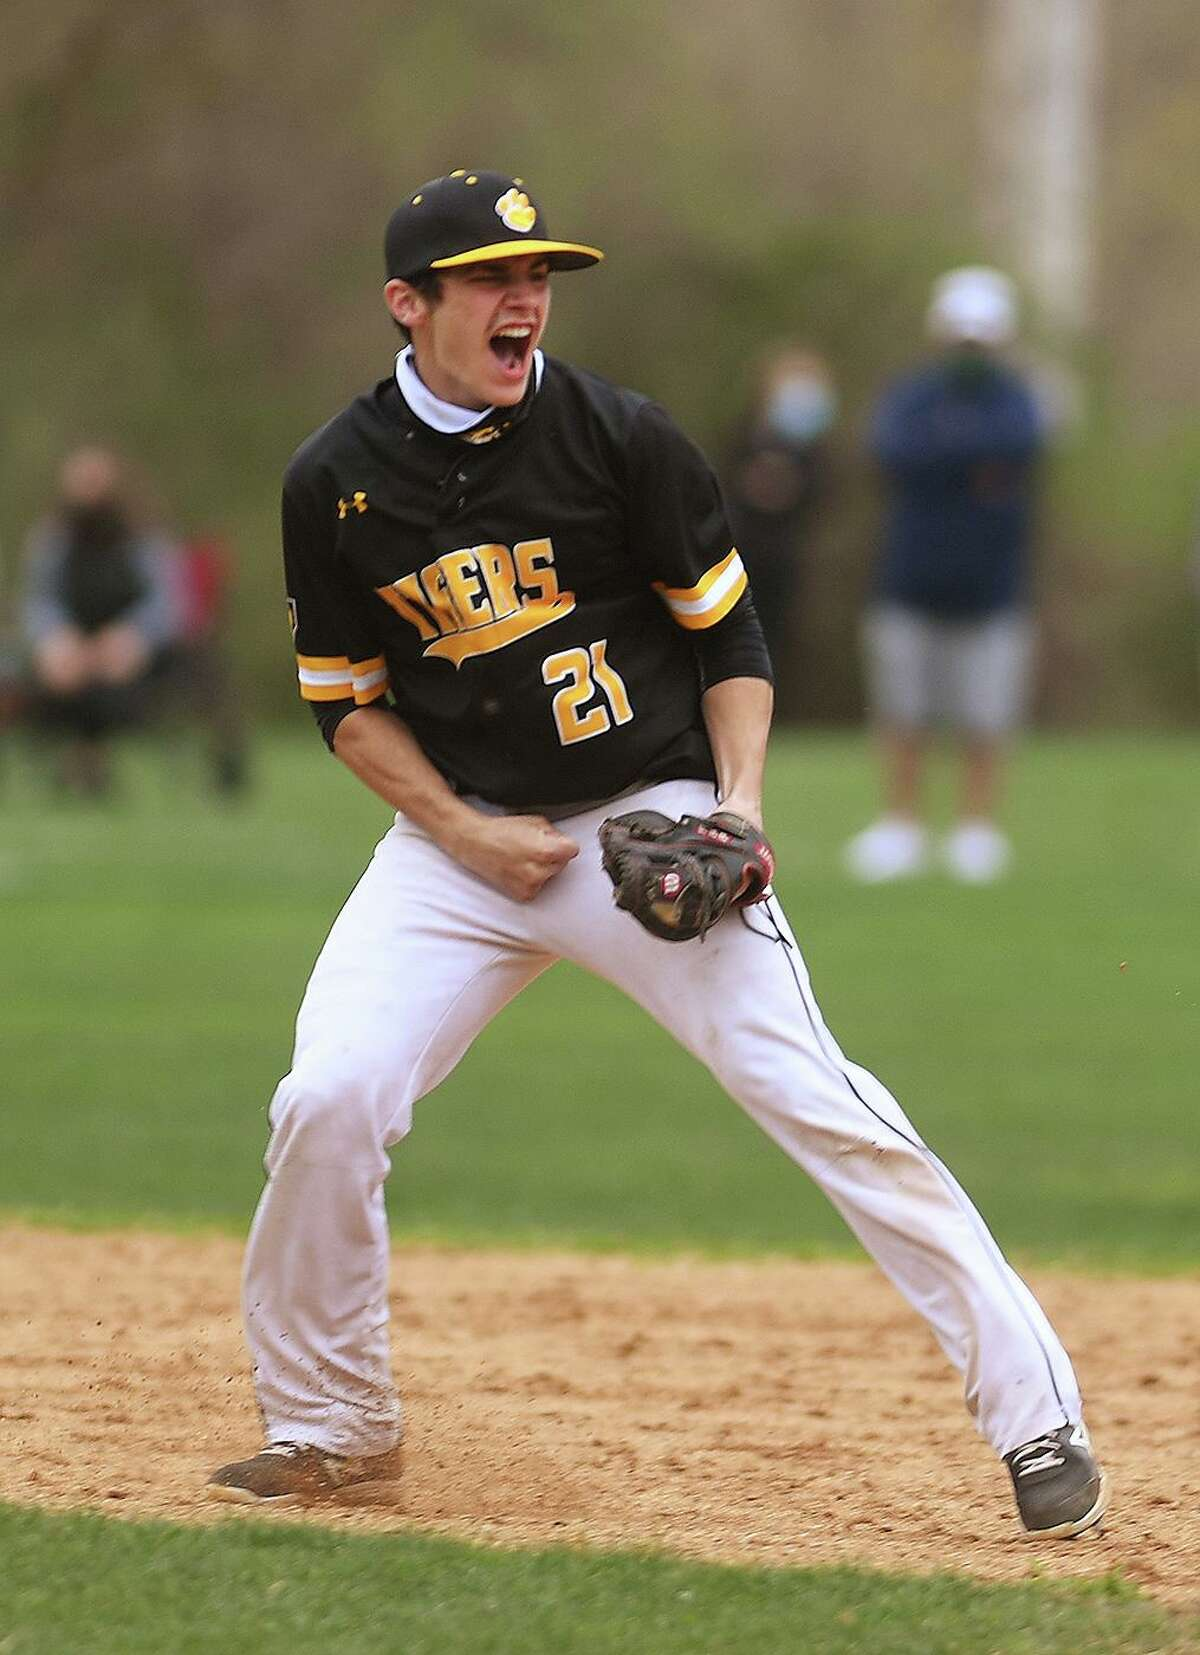 Hand shortstop Jack Pireaux reacts during Monday's game against Amity in Woodbridge.